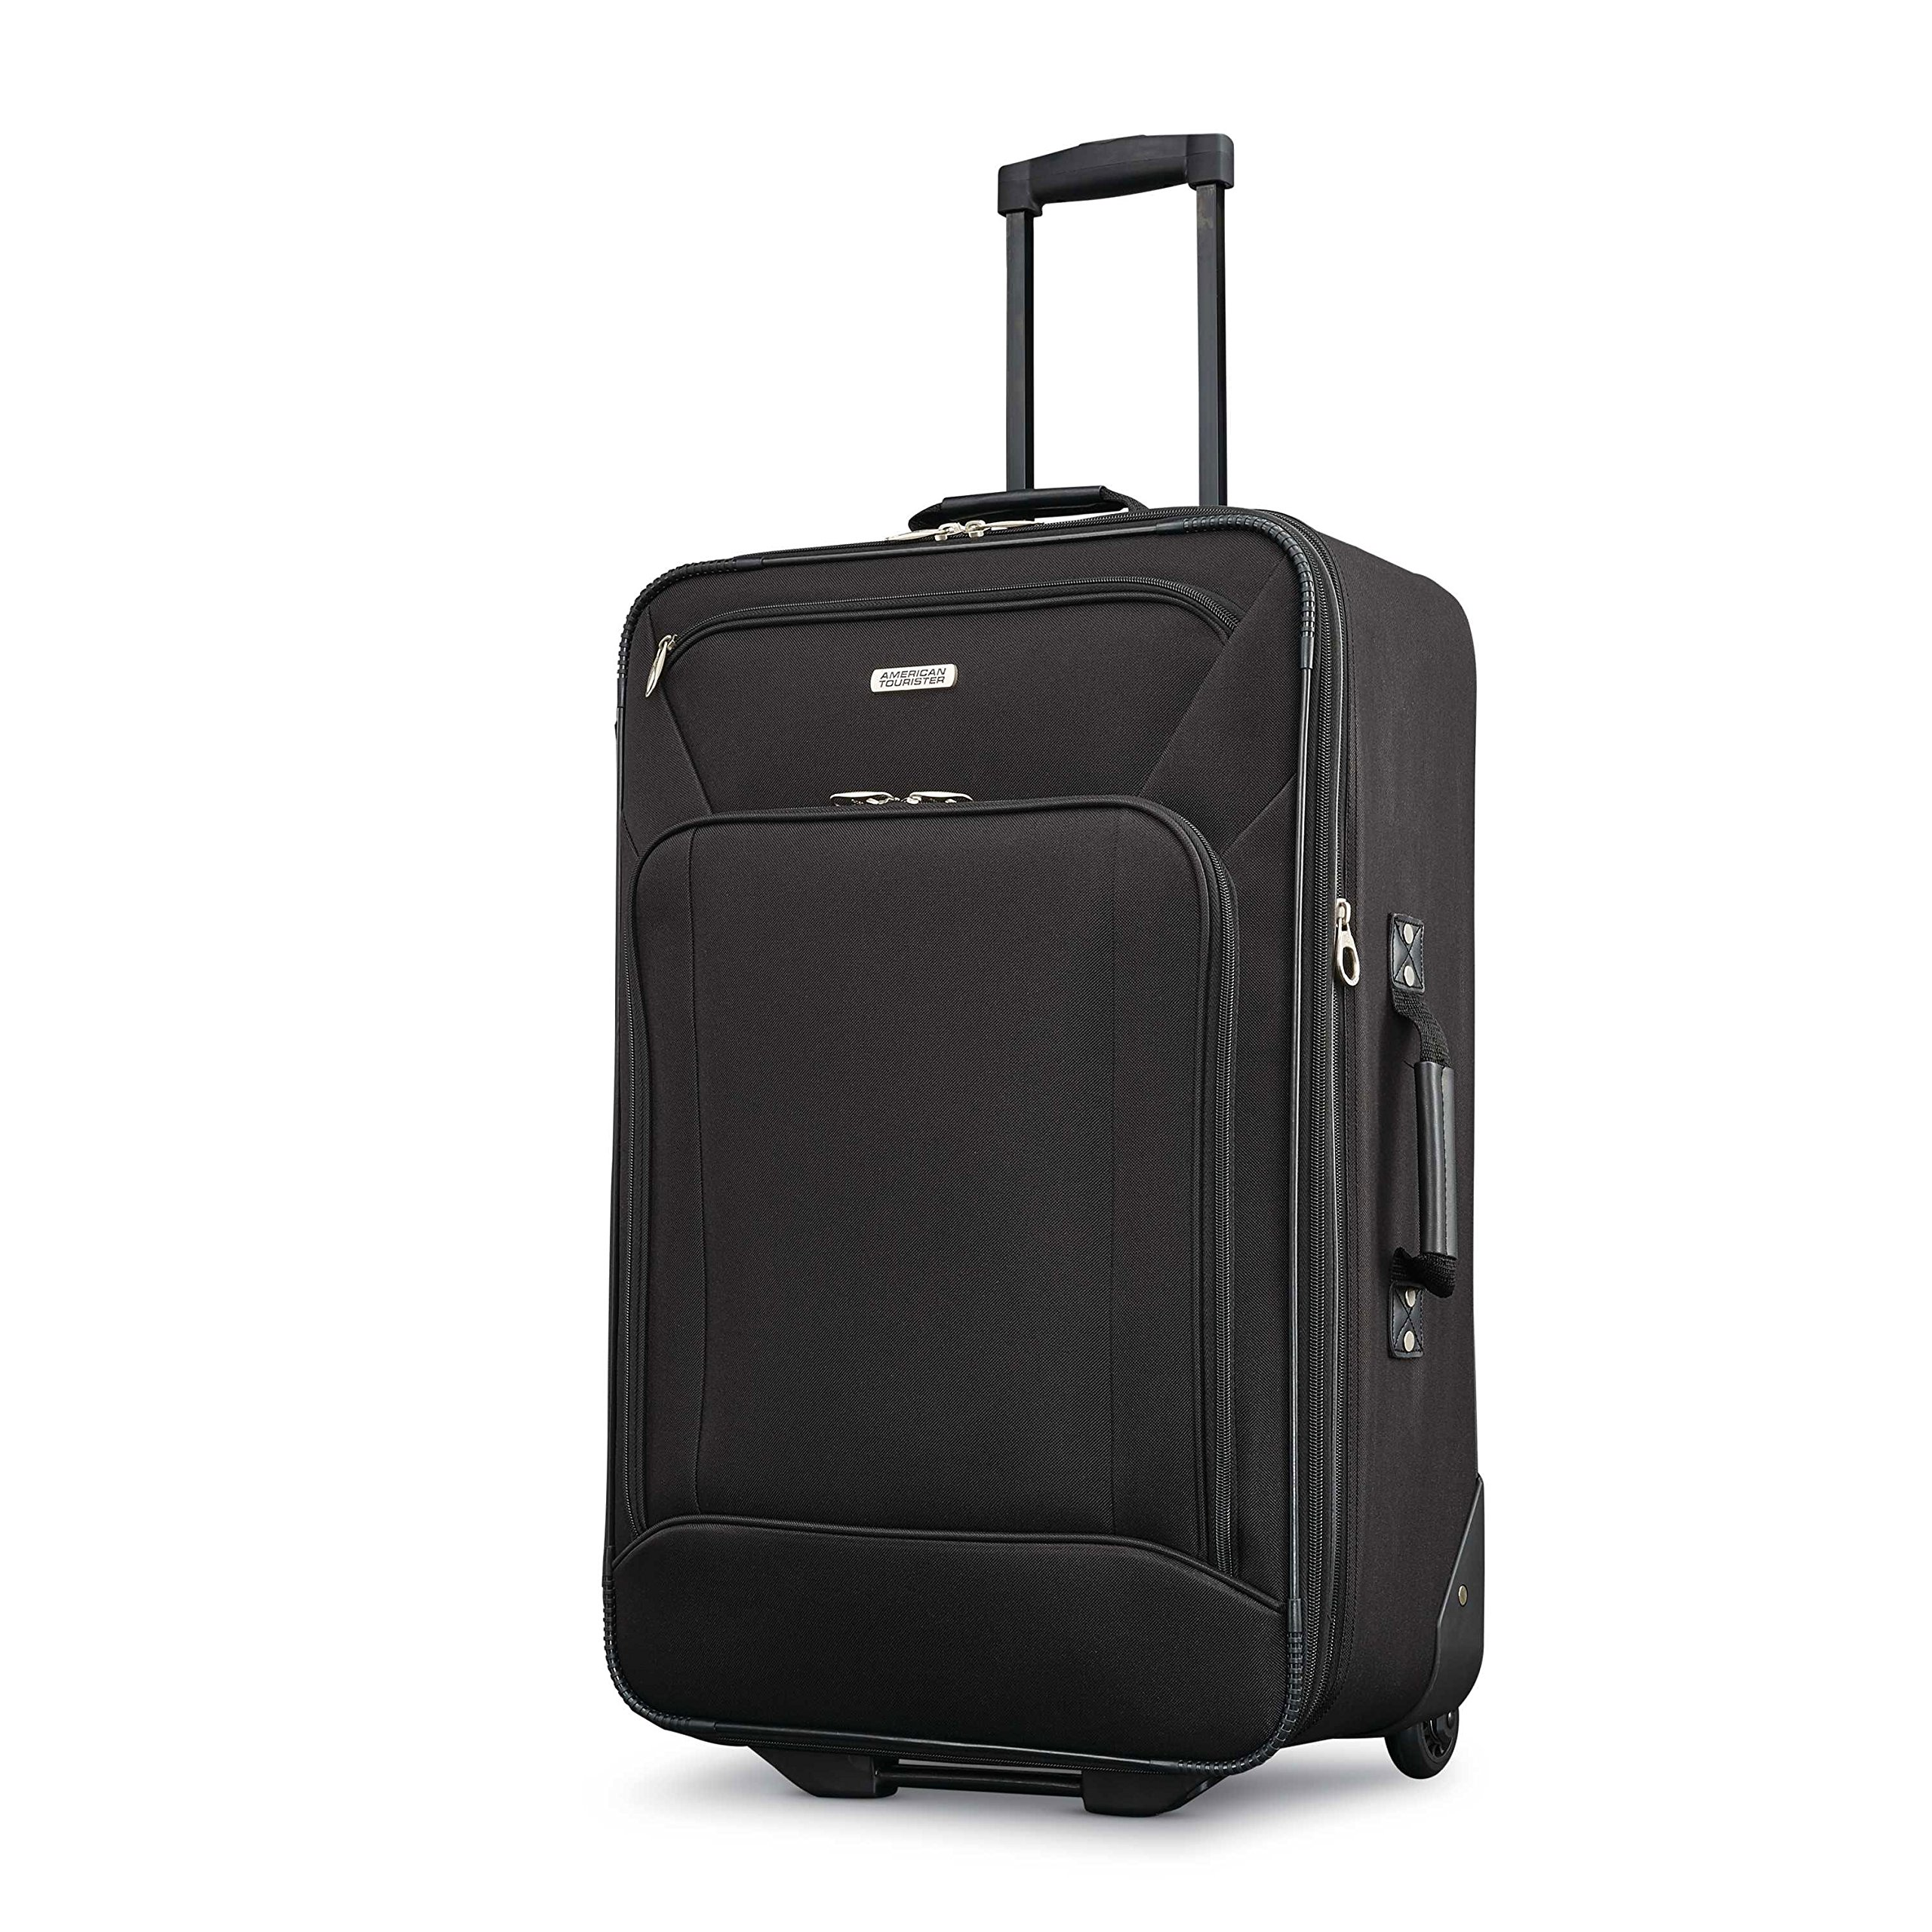 American Tourister Fieldbrook Xlt 4pc Set (Bb/Wh Dfl/ 21/25 Upright), Black by American Tourister (Image #6)